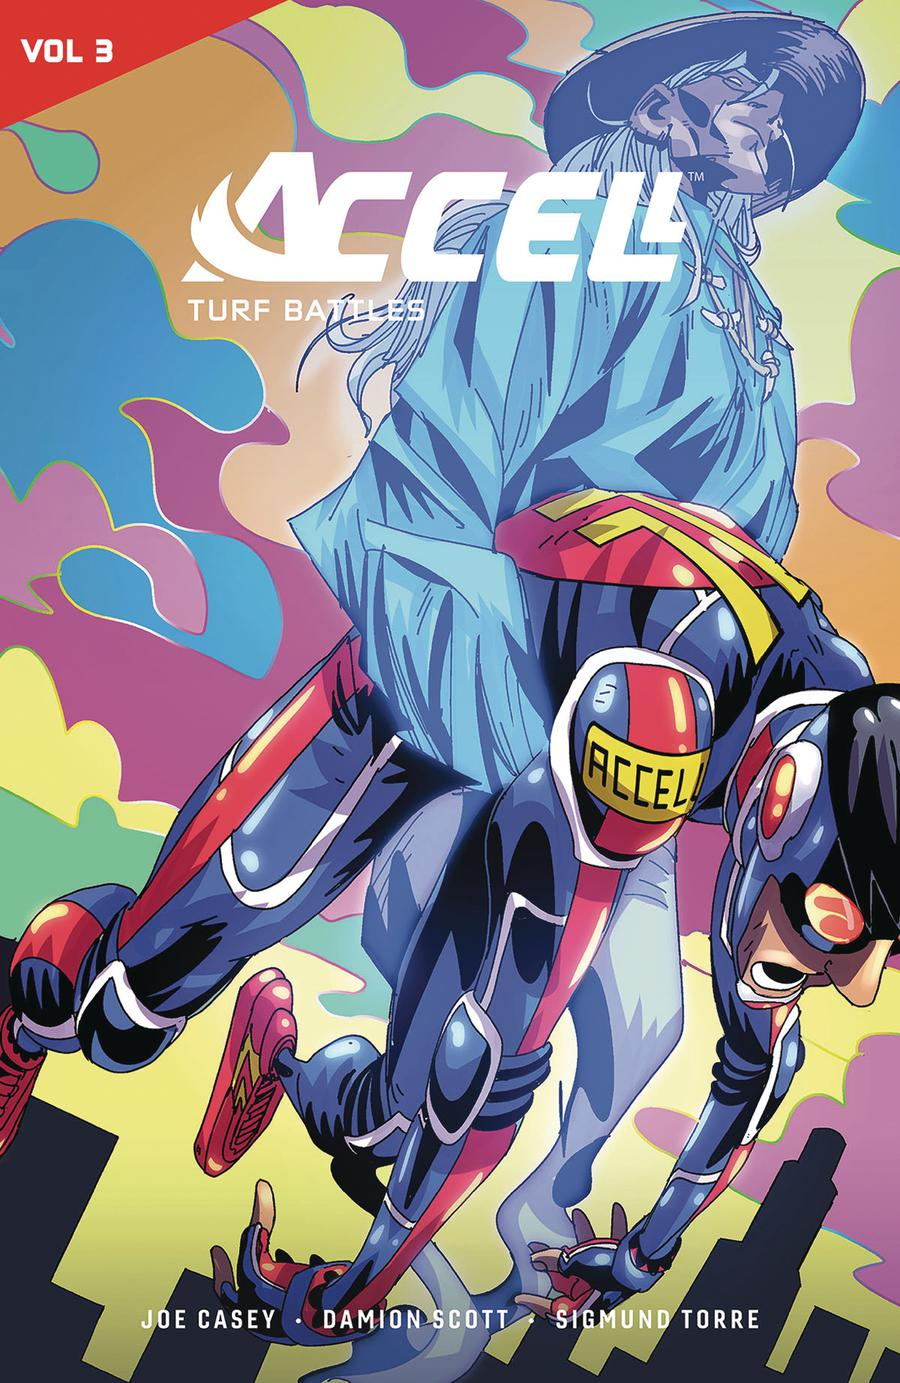 Catalyst Prime Accell Vol 3 Turf Battles TP